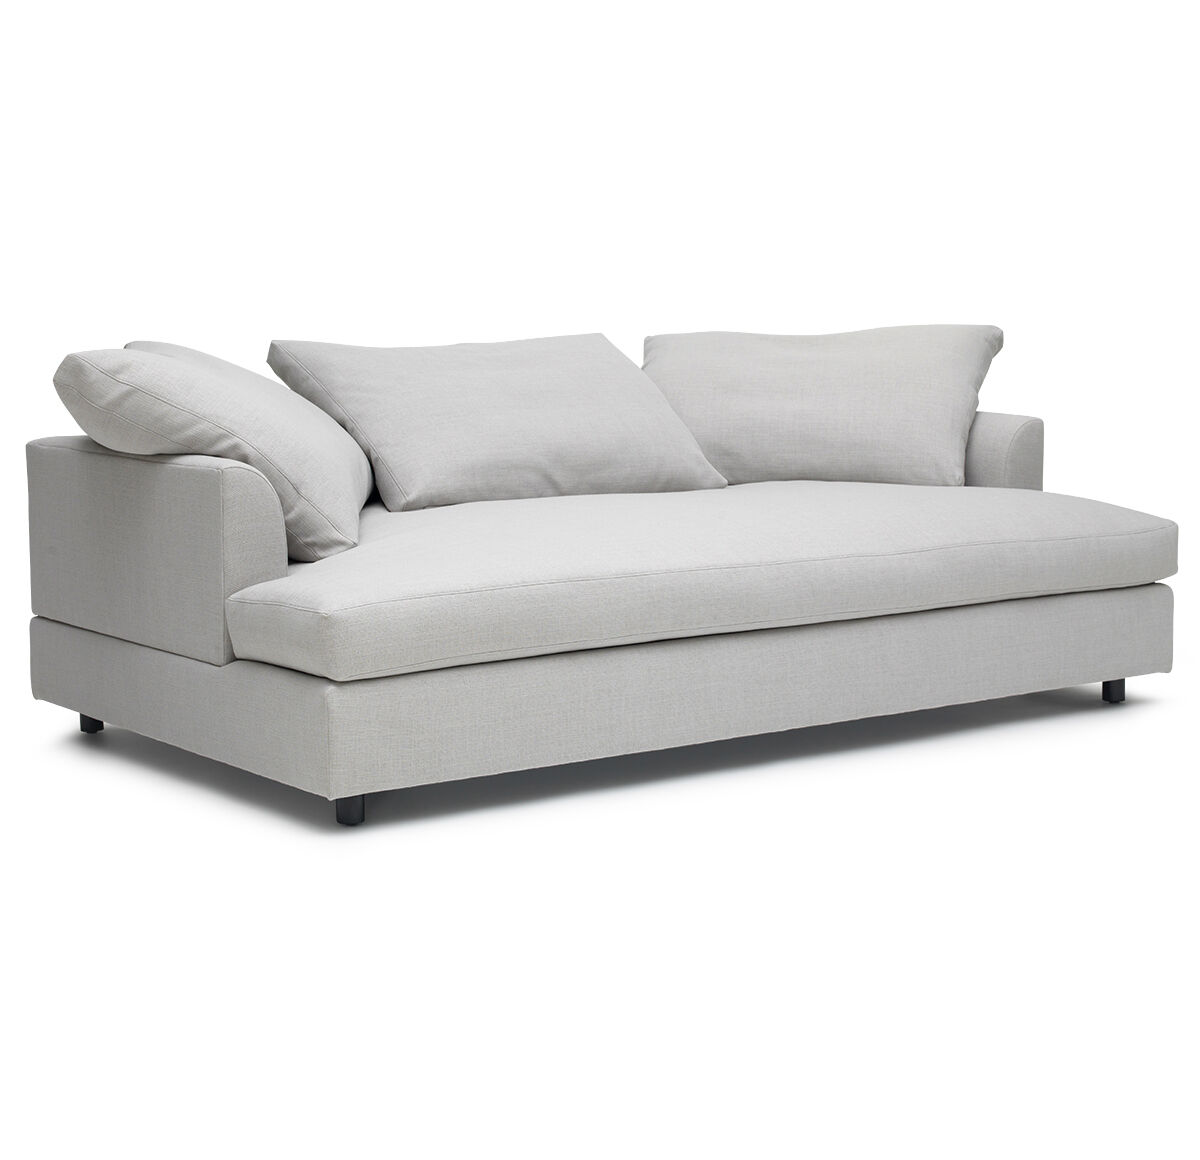 Big Sofa 250 Breit Big Sofa 2 20 M